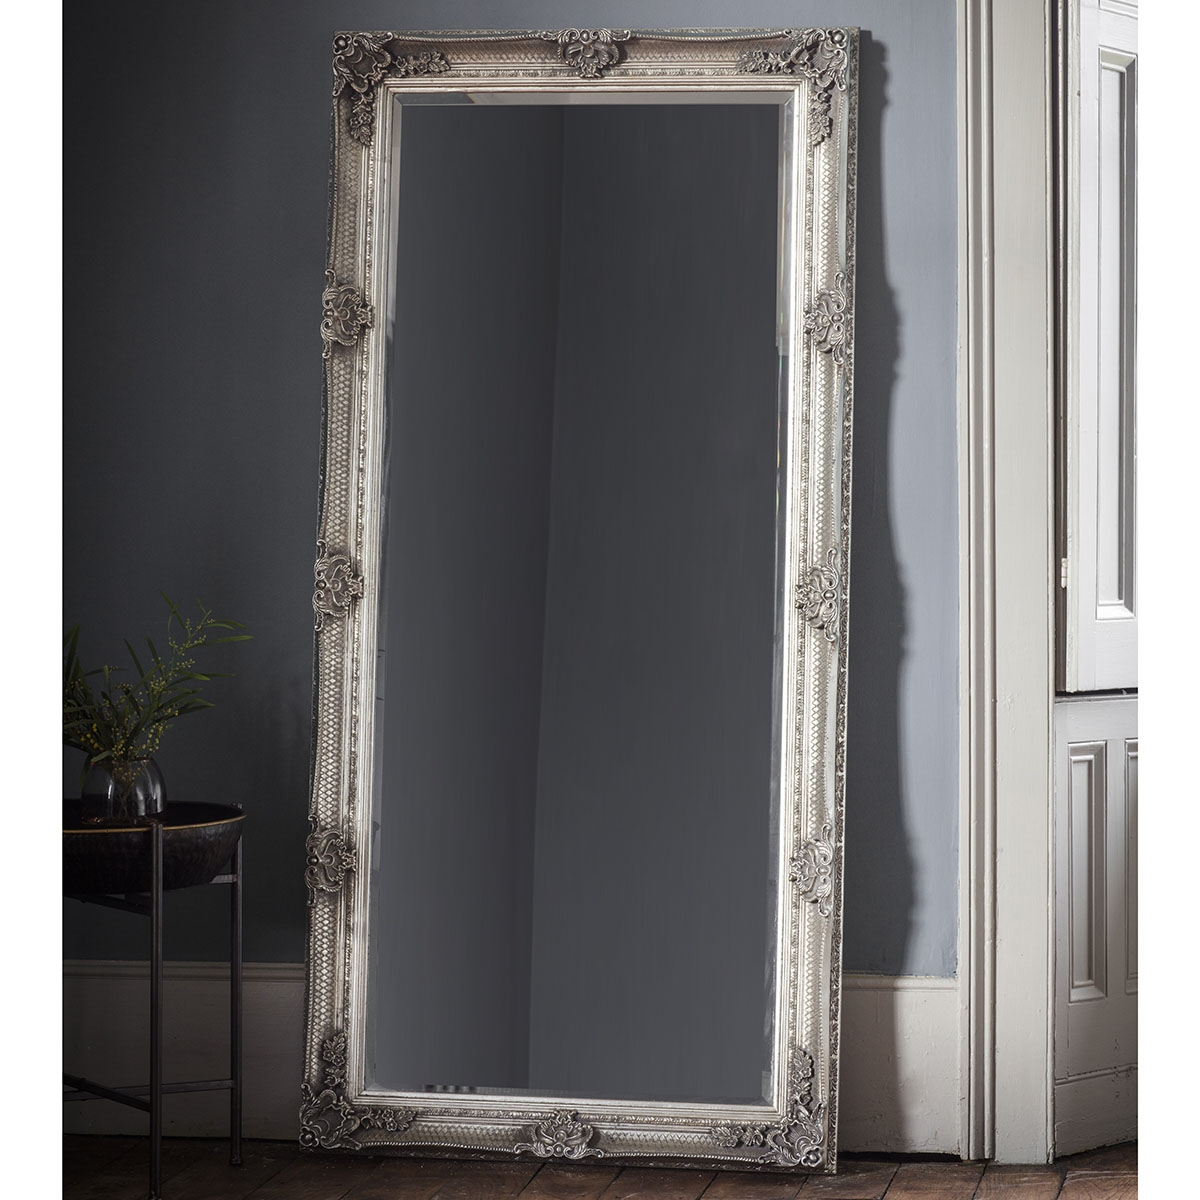 Image of Gallery Abbey Leaner Mirror, Silver